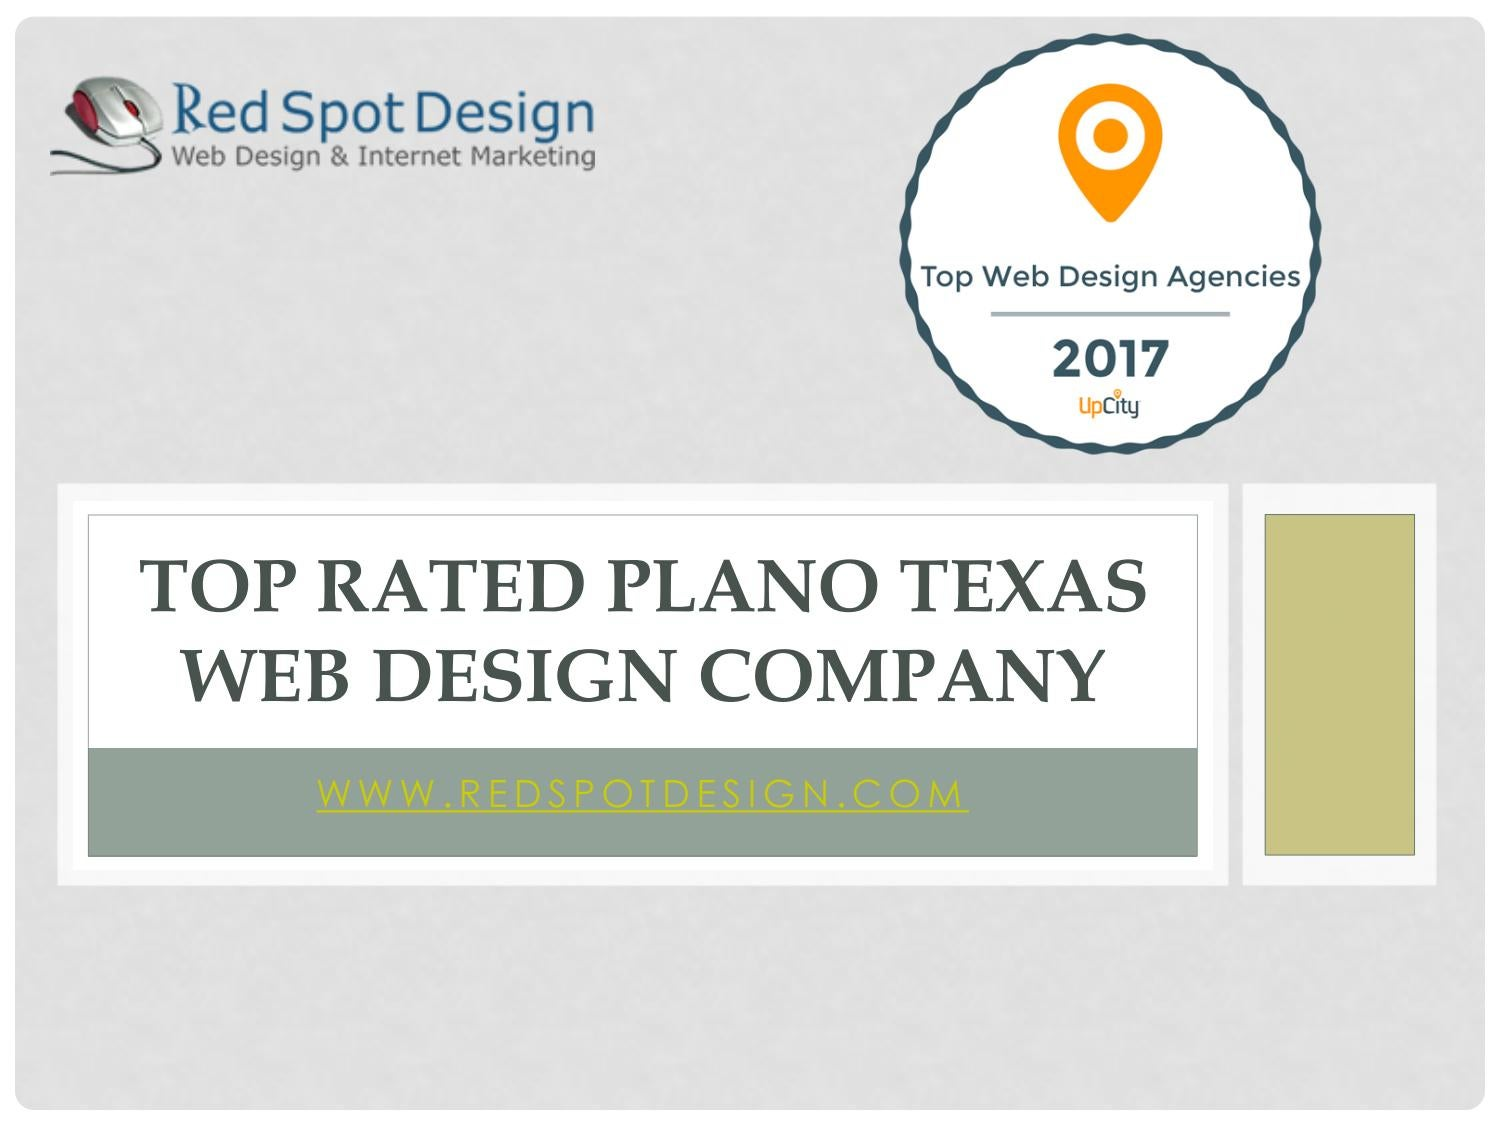 Top rated plano texas web design company